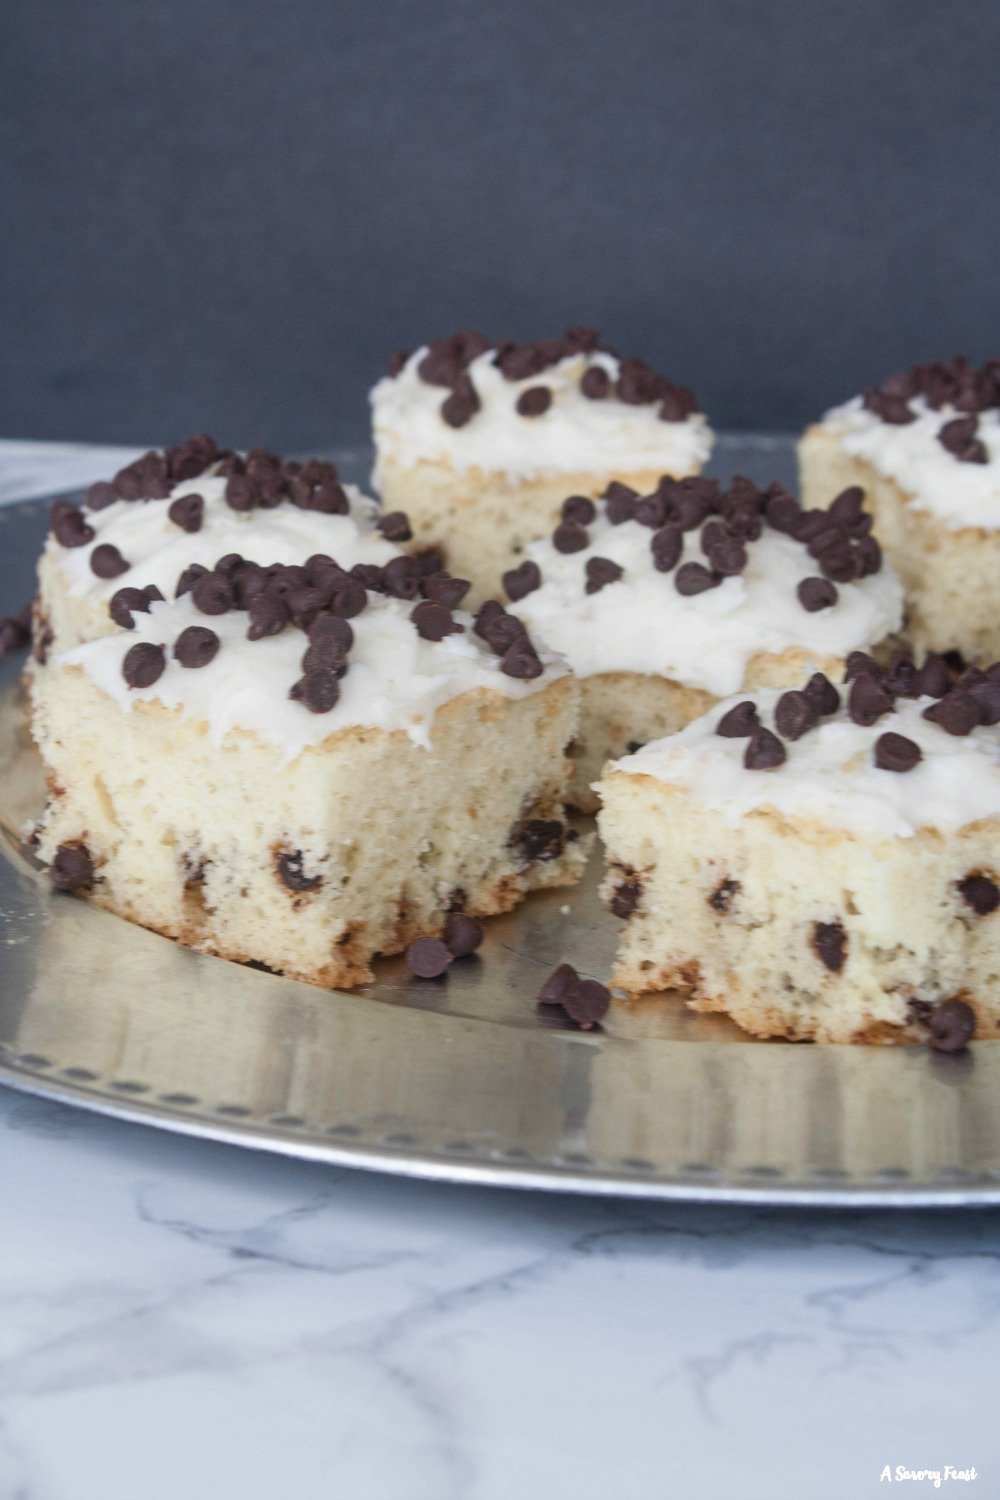 Chocolate Chip Snack Cake is a fun and tasty dessert idea!